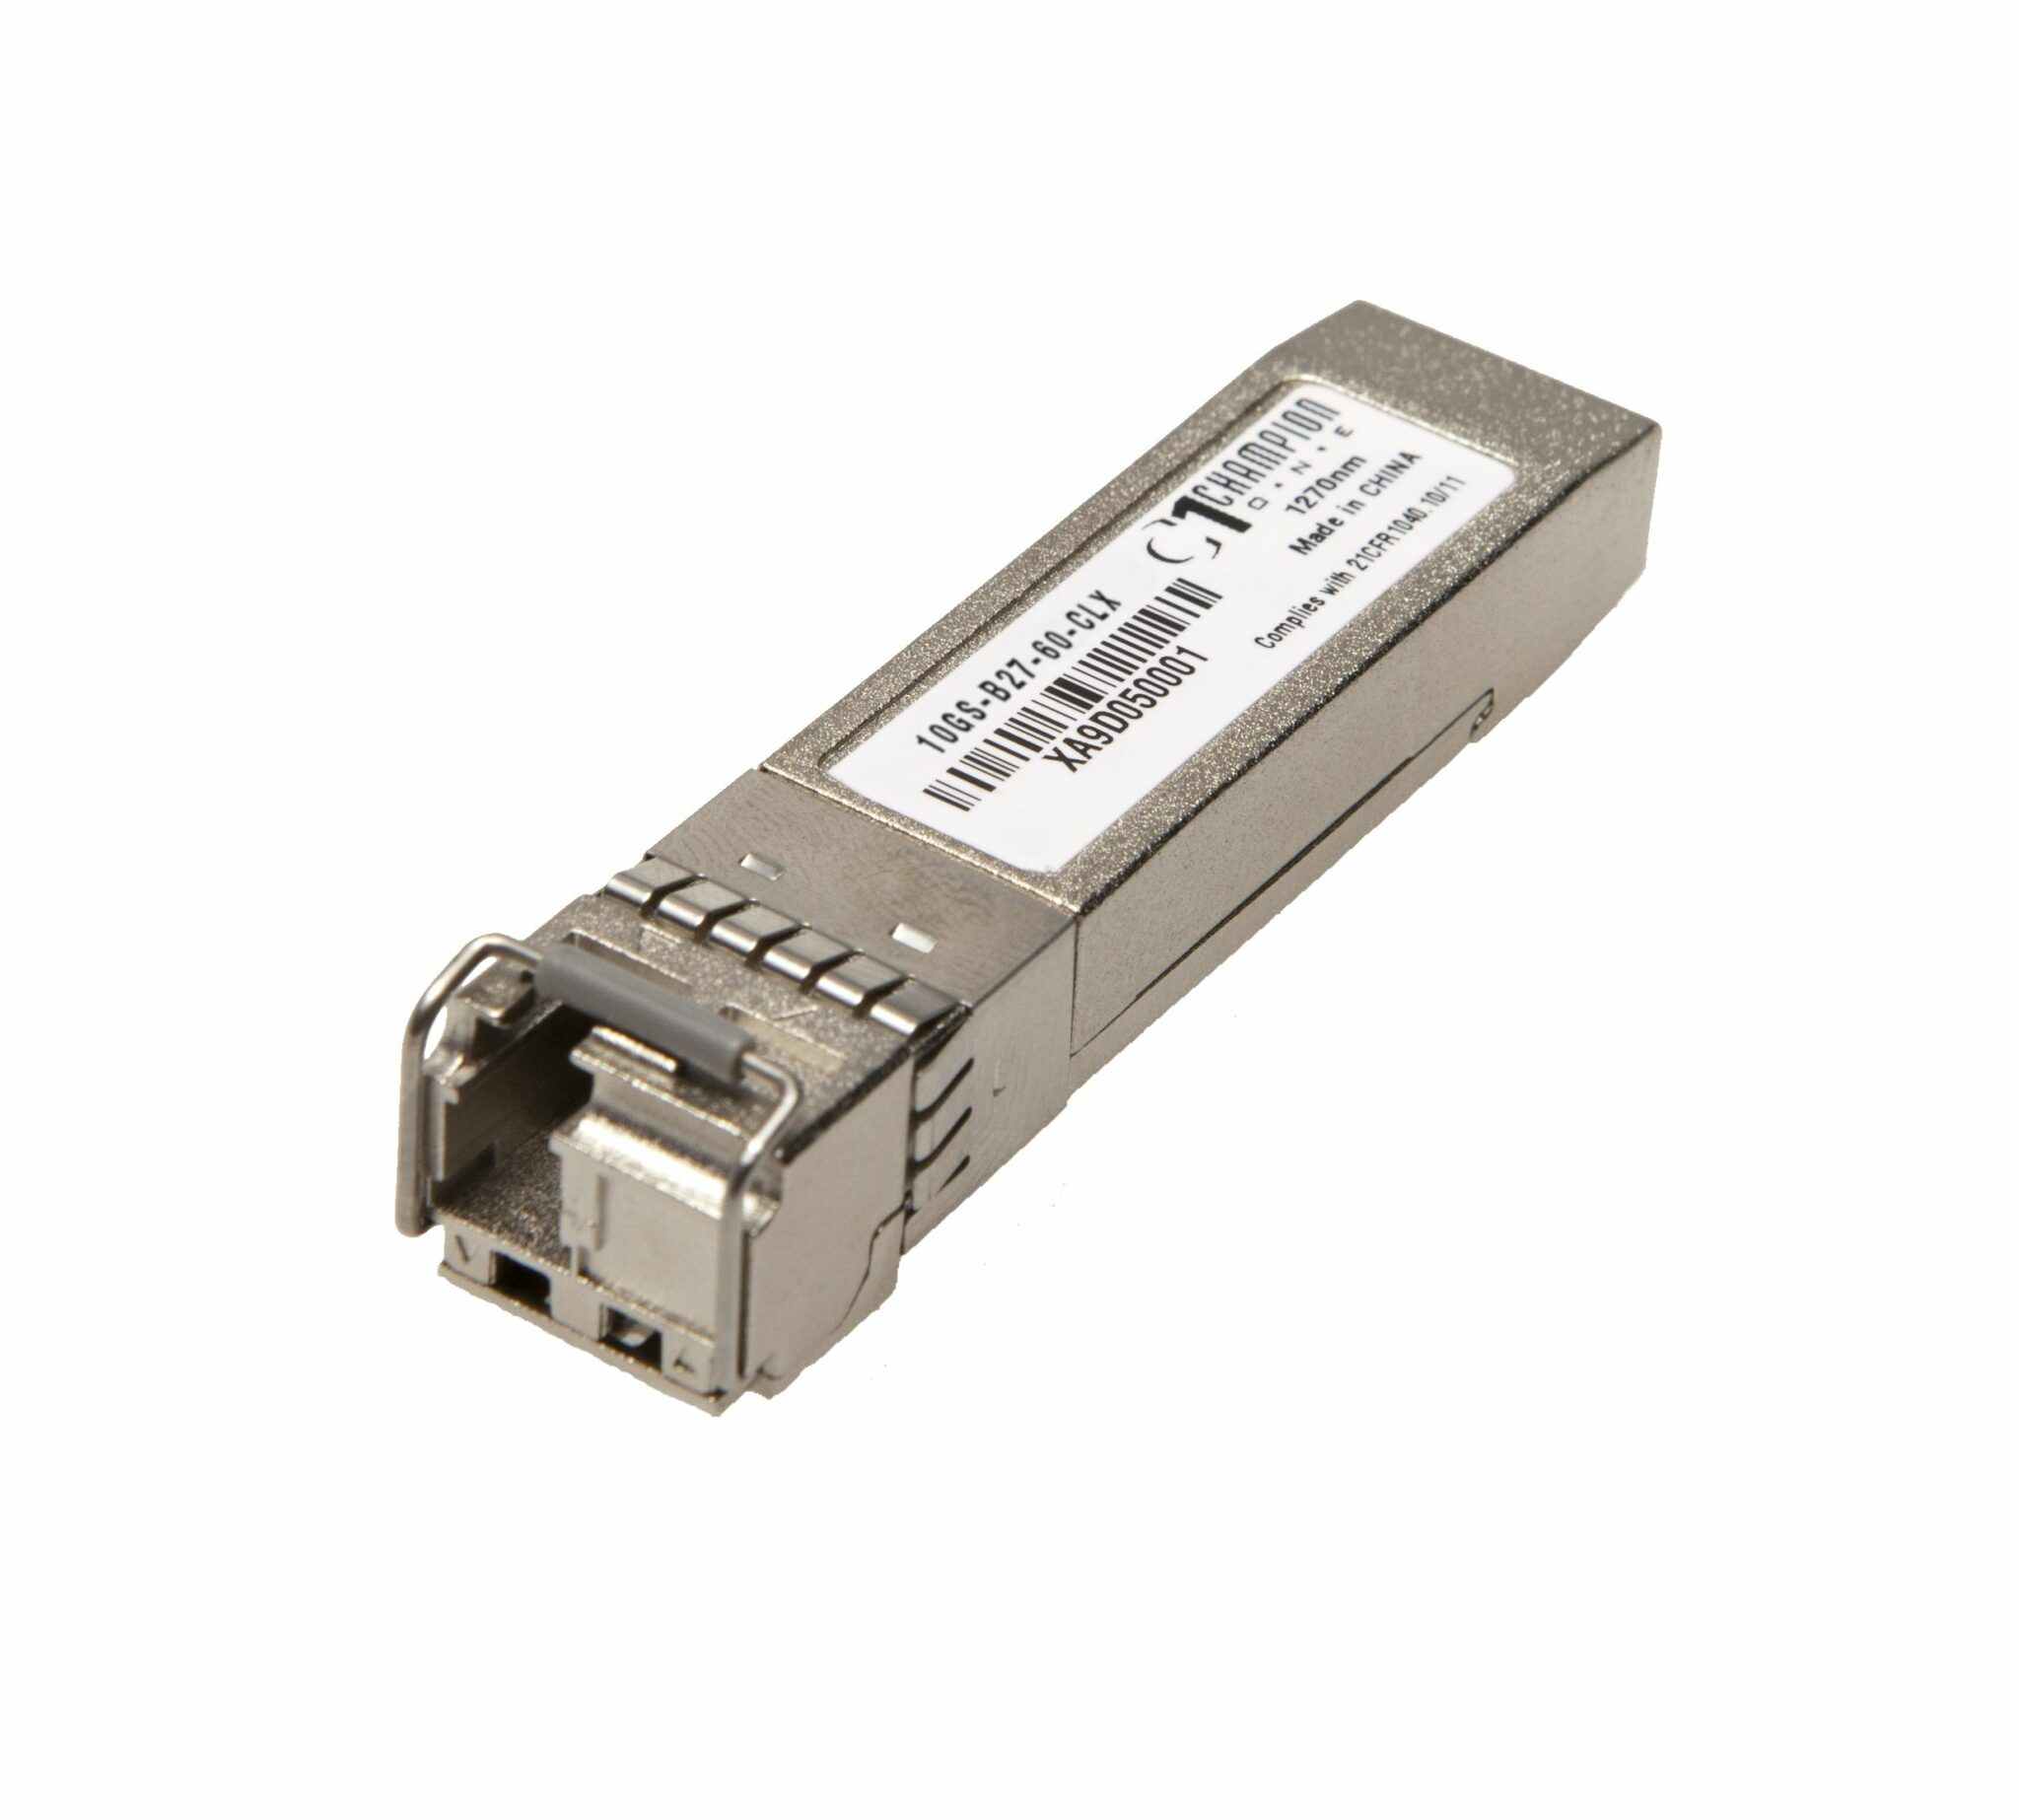 SFP+ SF 10GBase-ER 1270nm 60km, Calix compatible